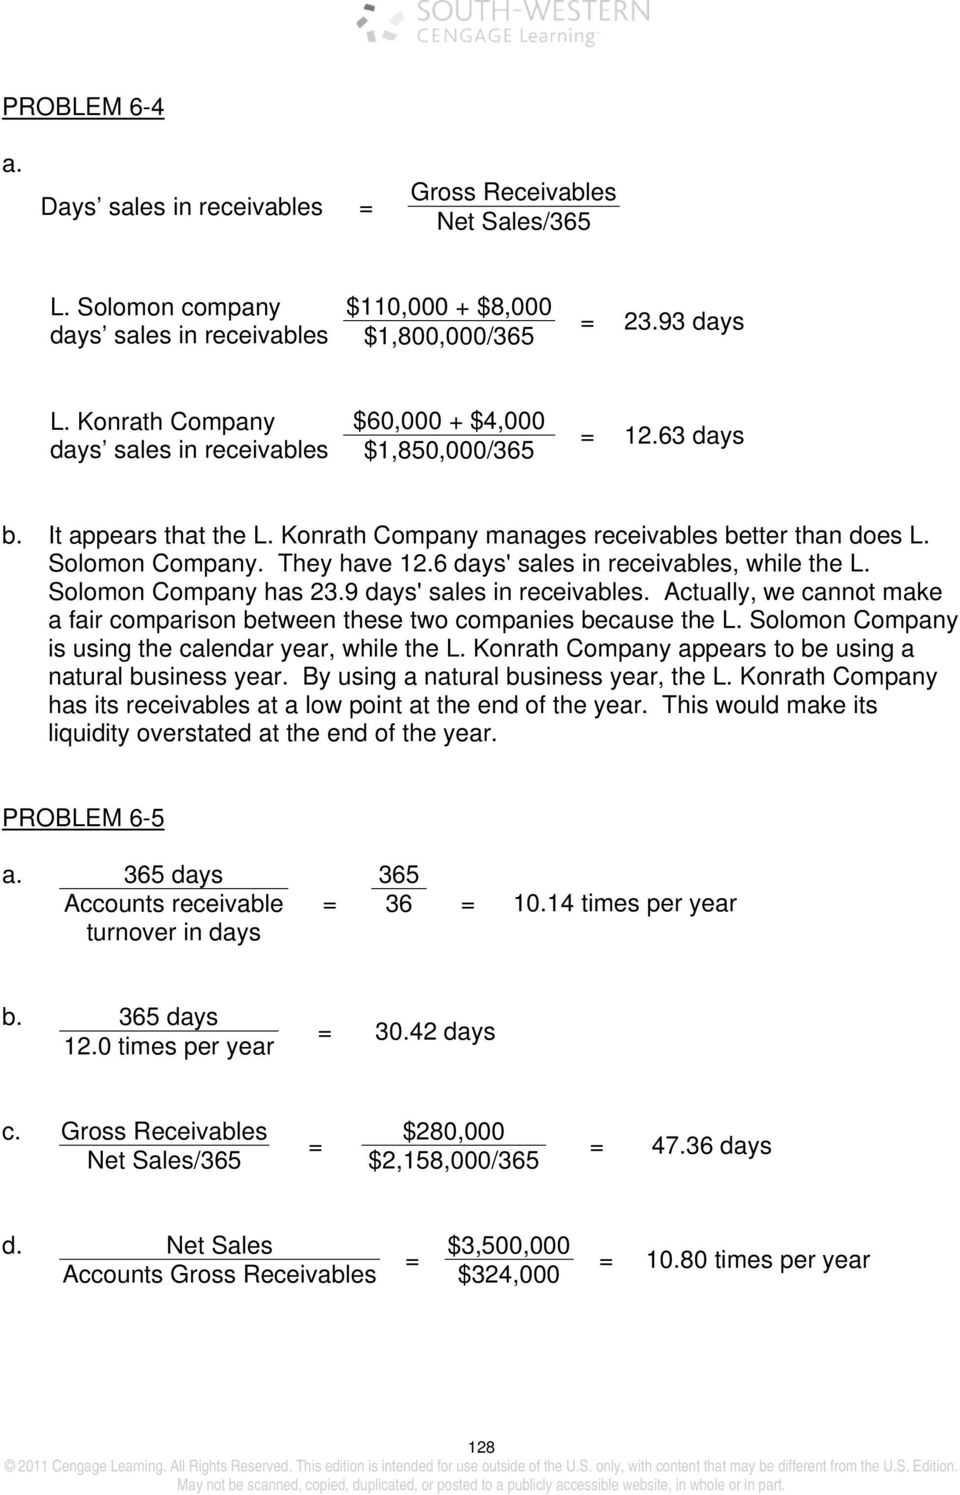 6 days' sales in receivables, while the L. Solomon Company has 23.9 days' sales in receivables. Actually, we cannot make a fair comparison between these two companies because the L.